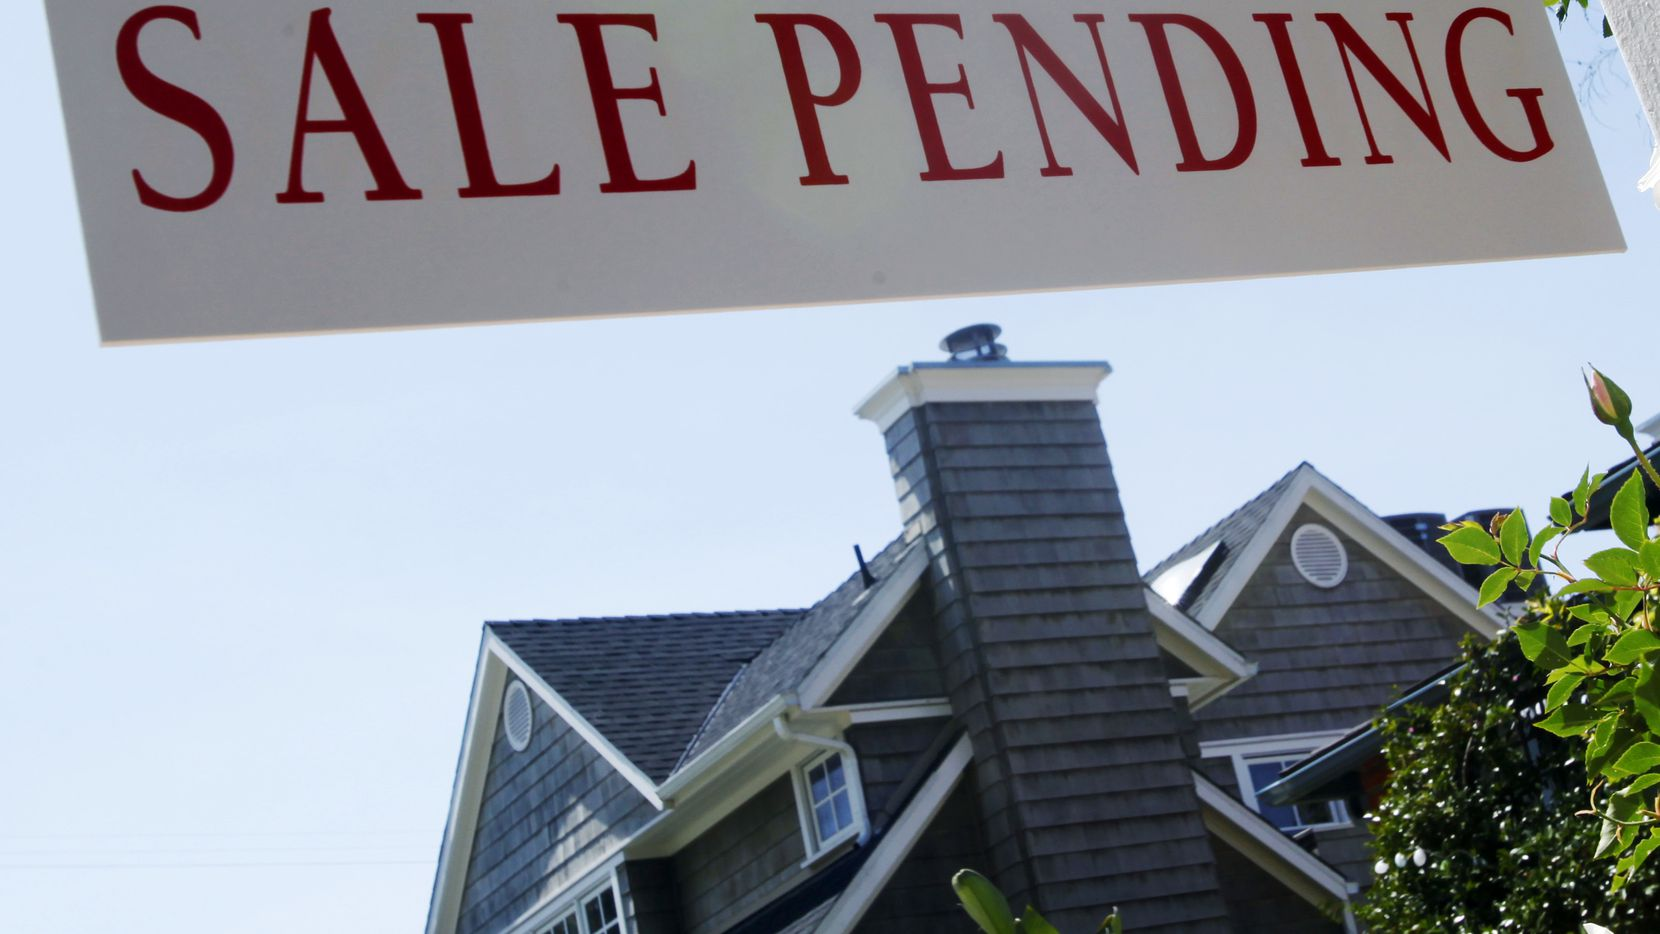 About one in seven U.S. homebuyers last year wish they hadn't done the deal.